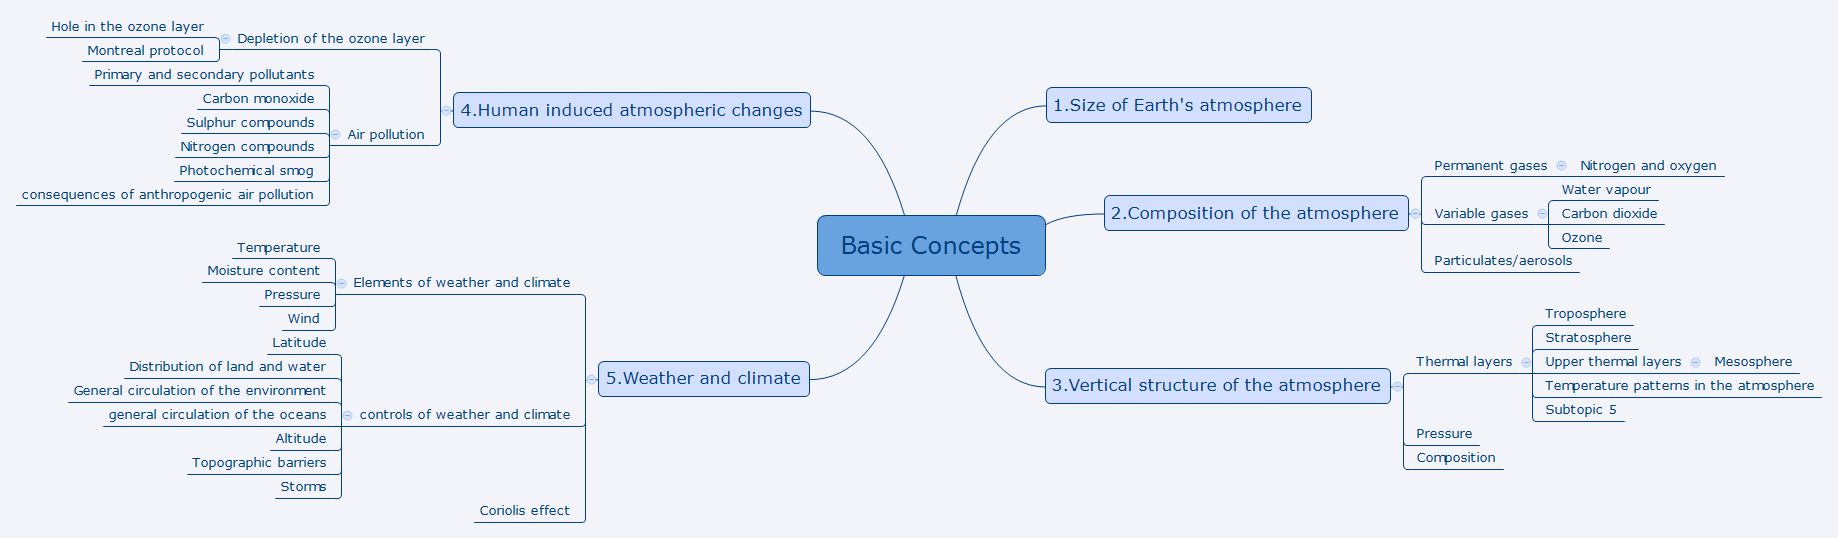 Basic Concepts, Geography strategy IASbaba